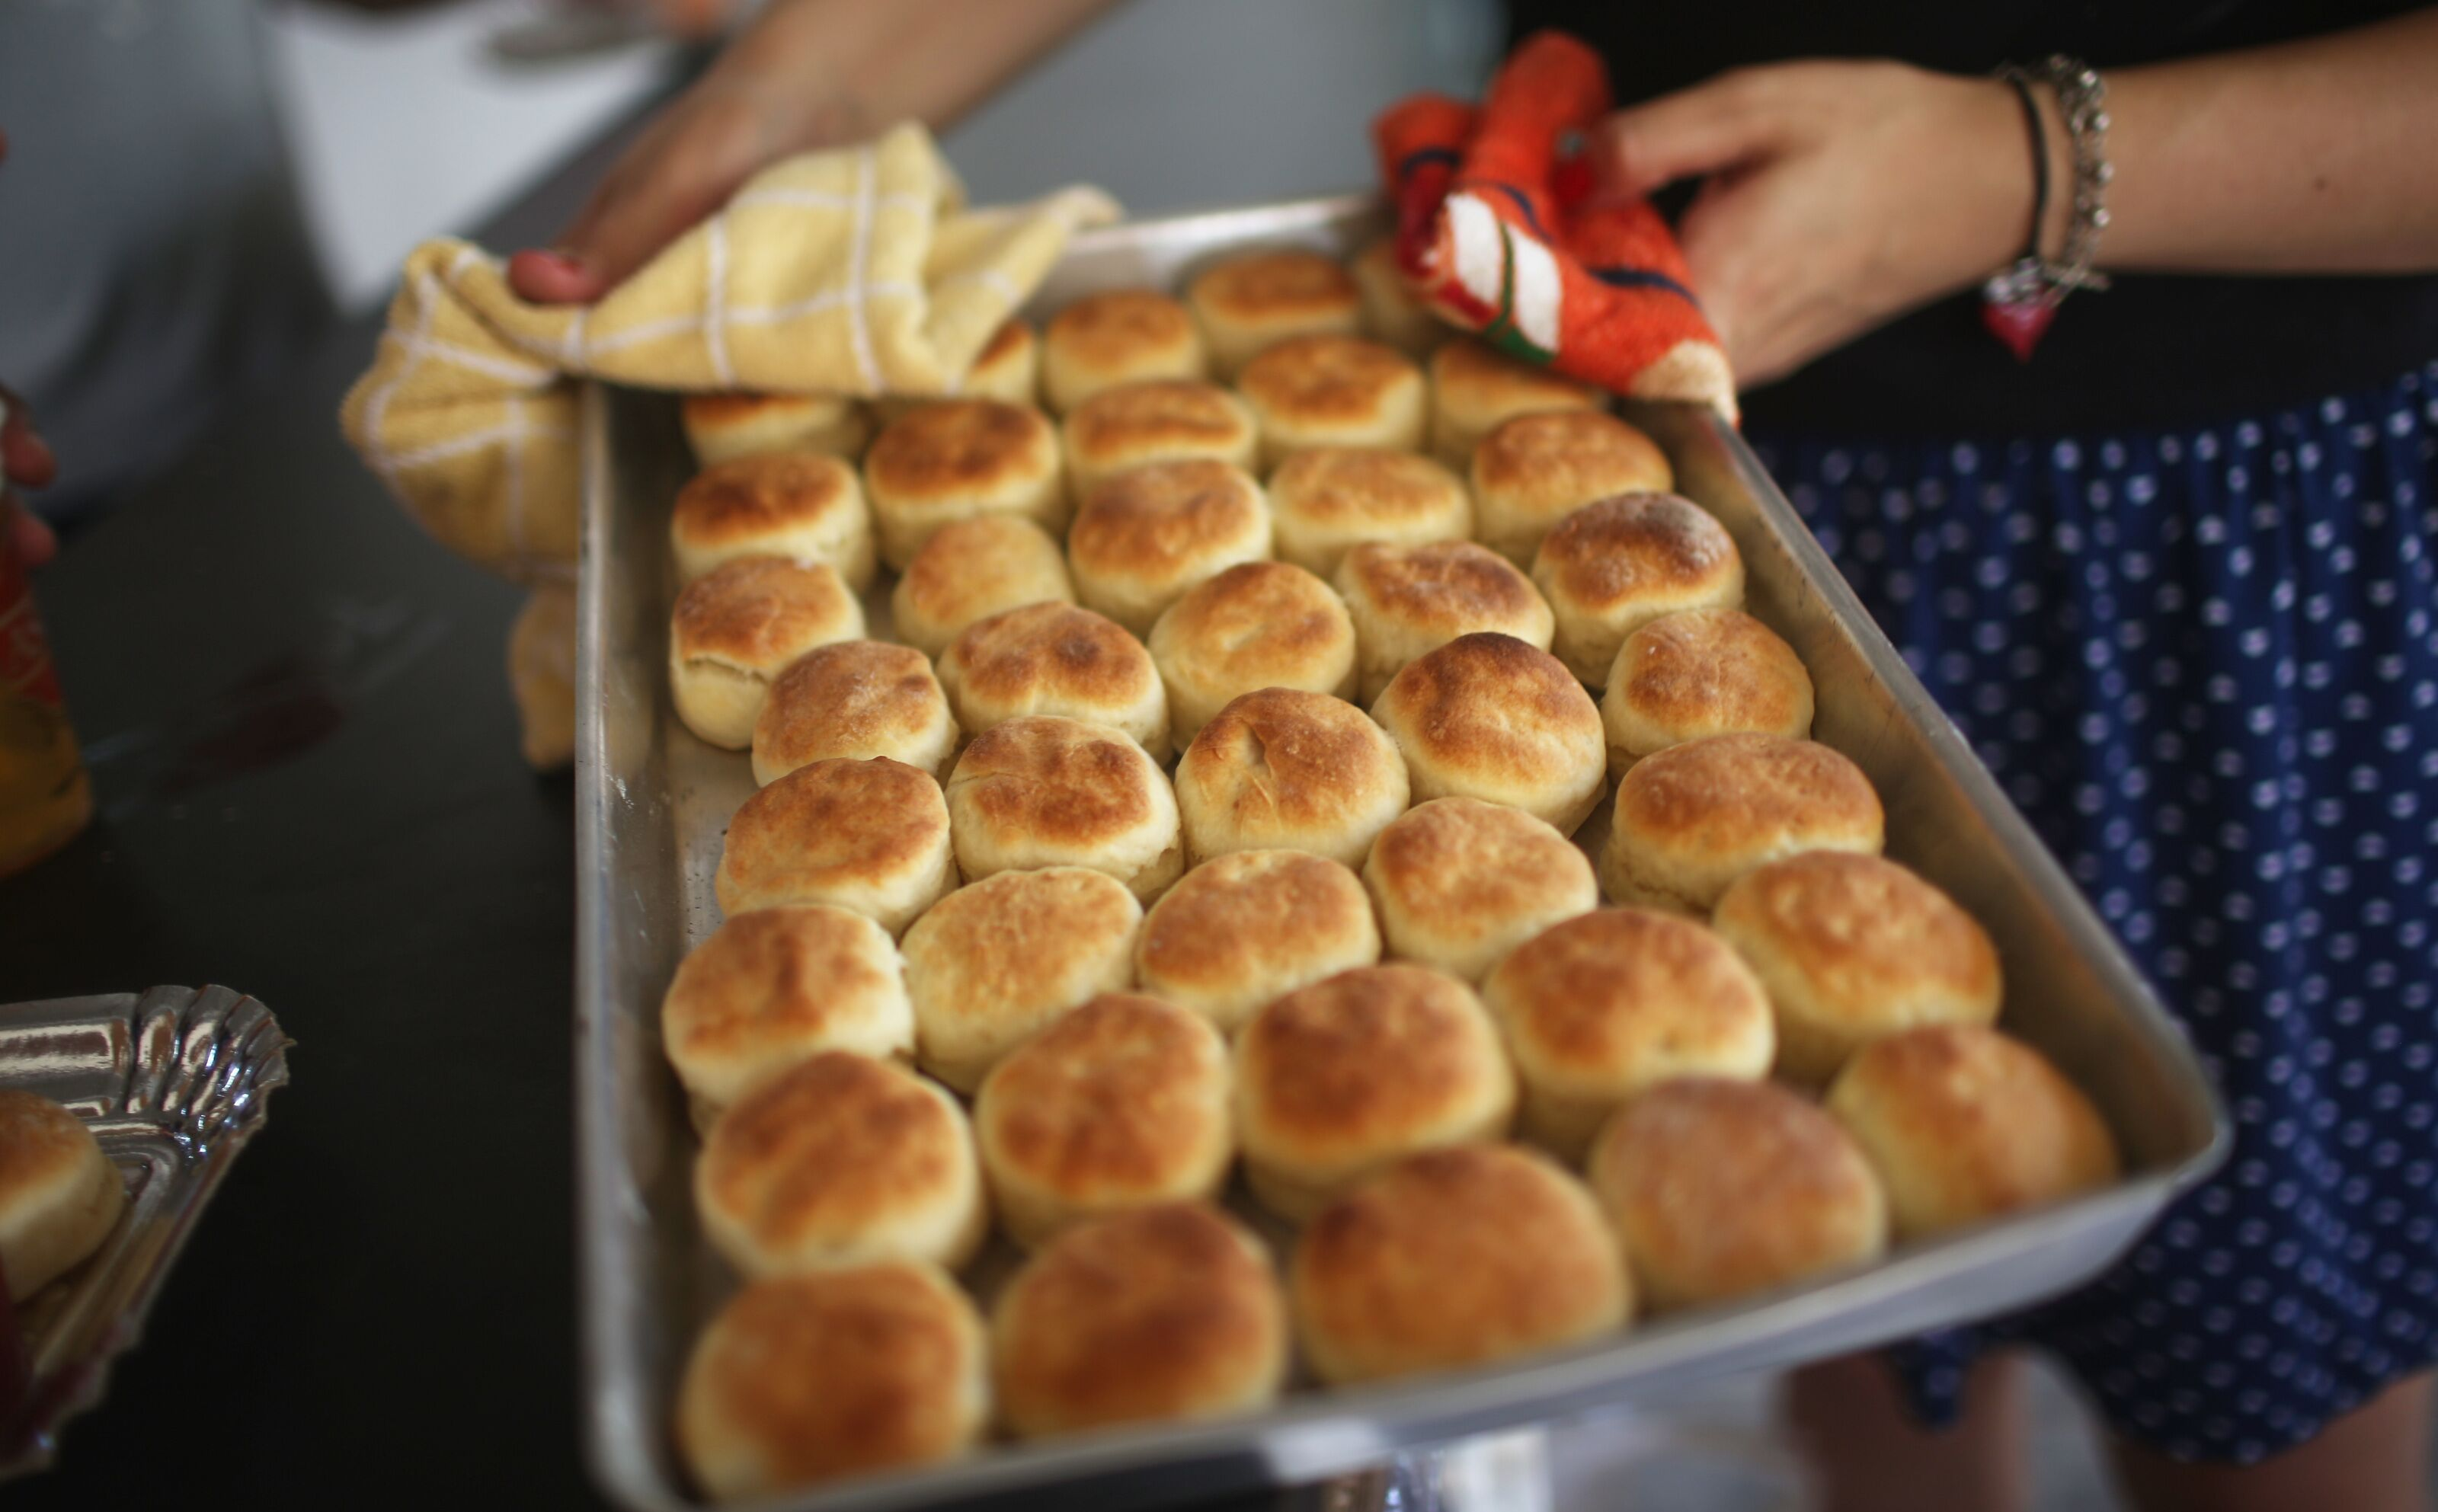 National Buttermilk Biscuit Day: 3 must-try recipes to celebrate the day!